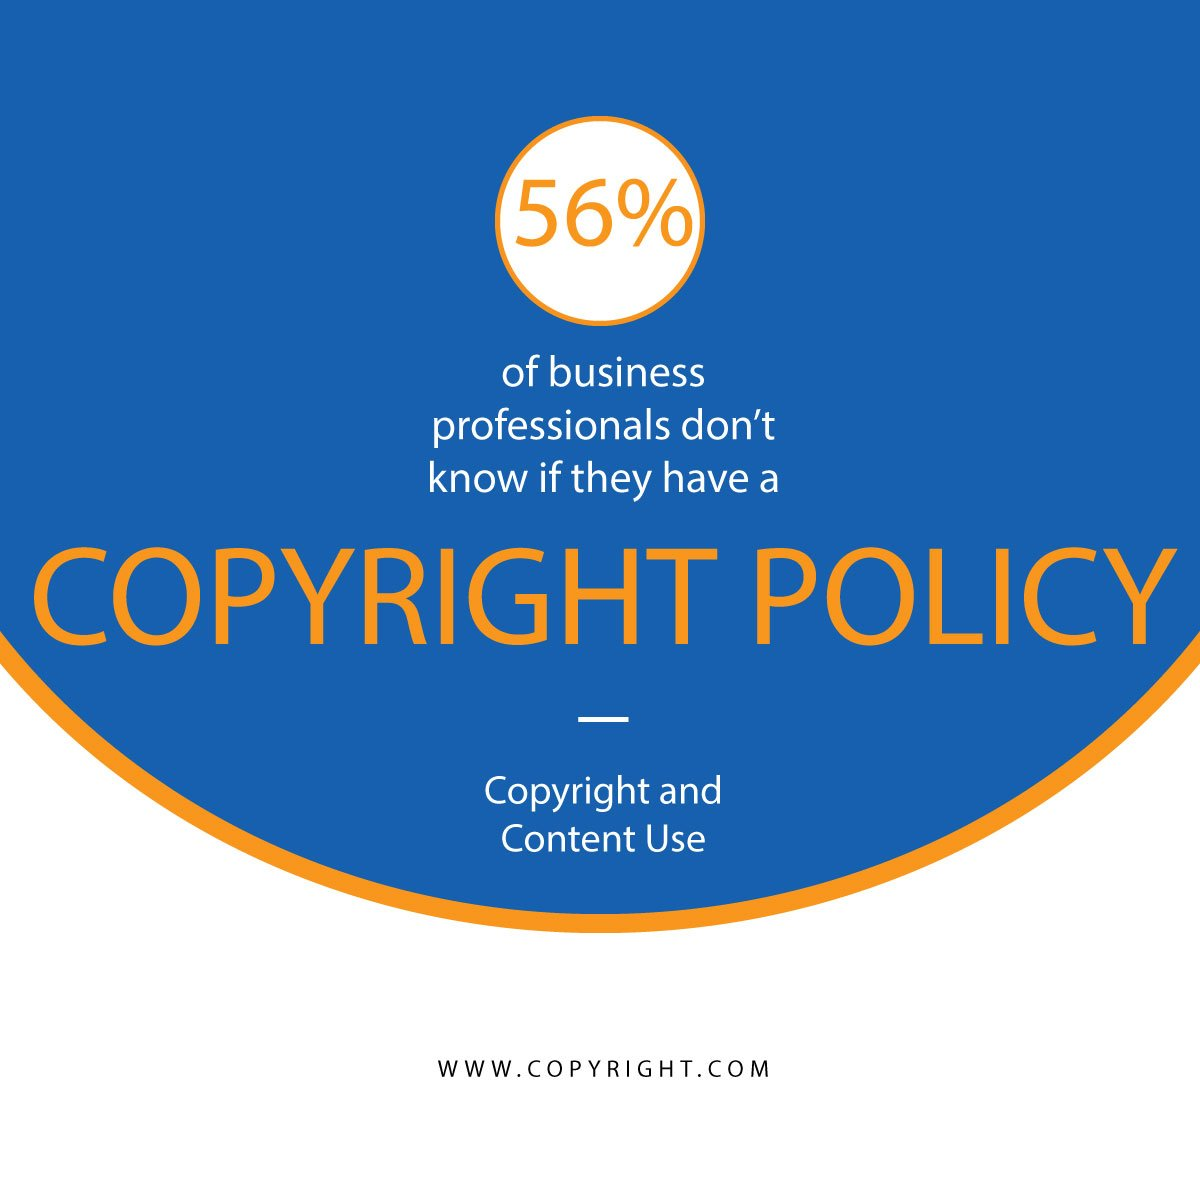 test Twitter Media - Enterprise content usage is up, but #copyright awareness isn't. Employees often share copyrighted material without any knowledge of copyright compliance. View our infographic: https://t.co/IYHLcaTcYZ https://t.co/Sk0kMjJWvM